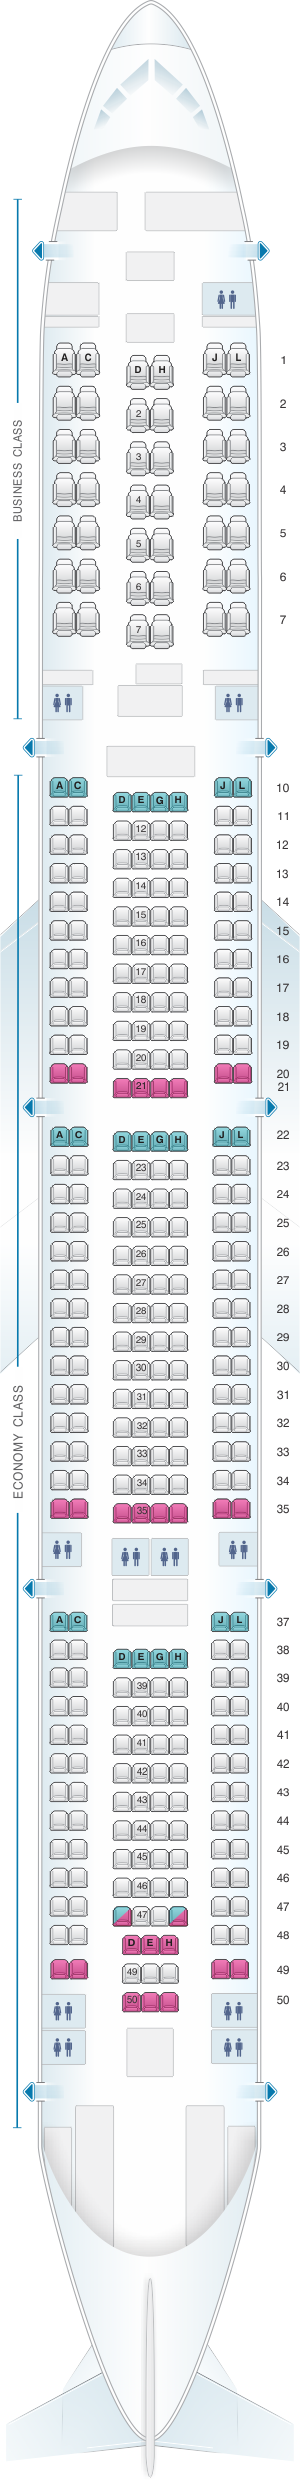 Seat map for Iberia Airbus A340 600 342pax